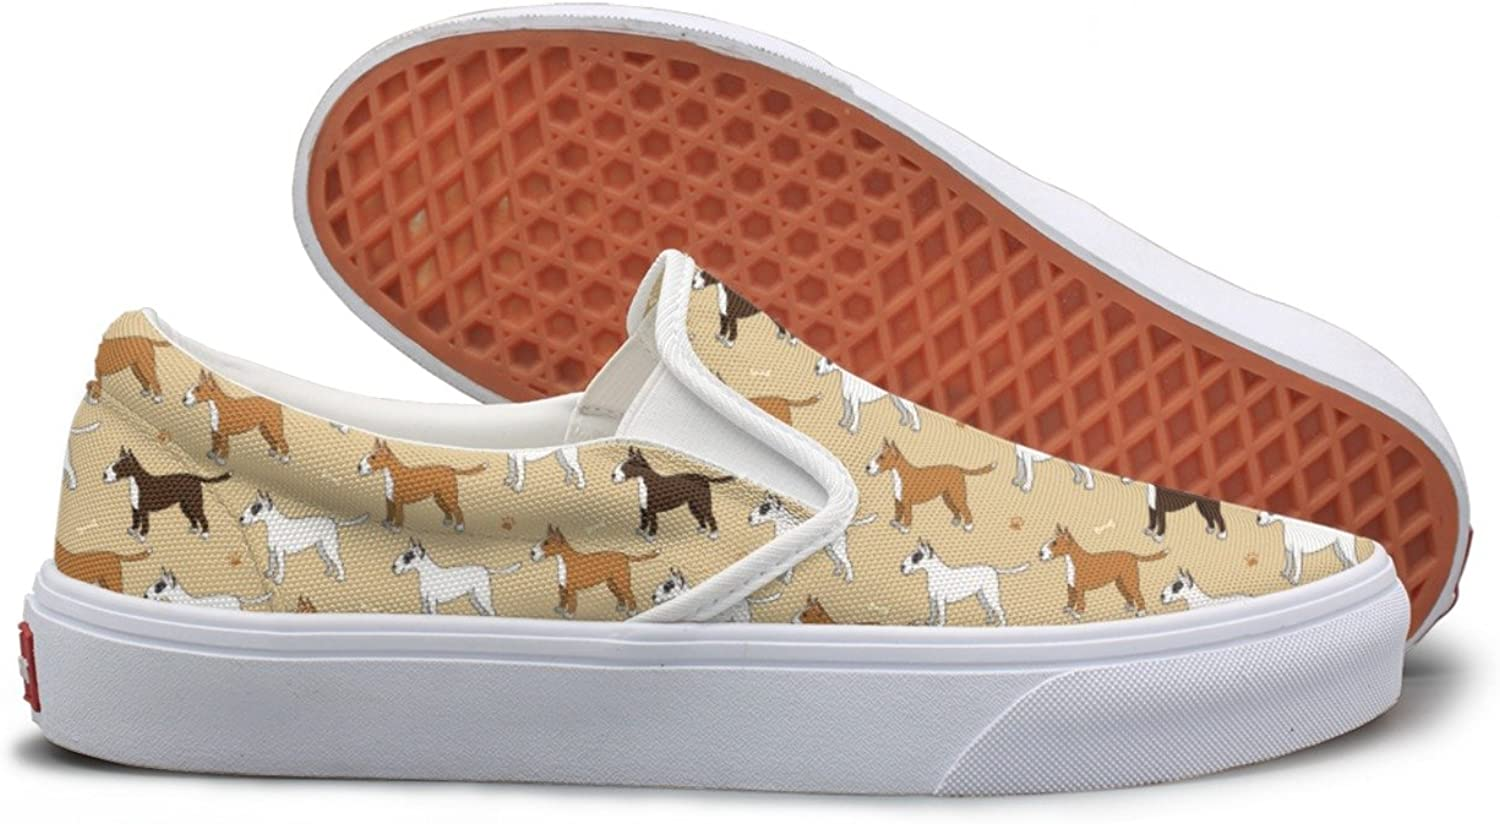 Playing Dog Funny Purebred Puppy Basketball Sneakers For Women